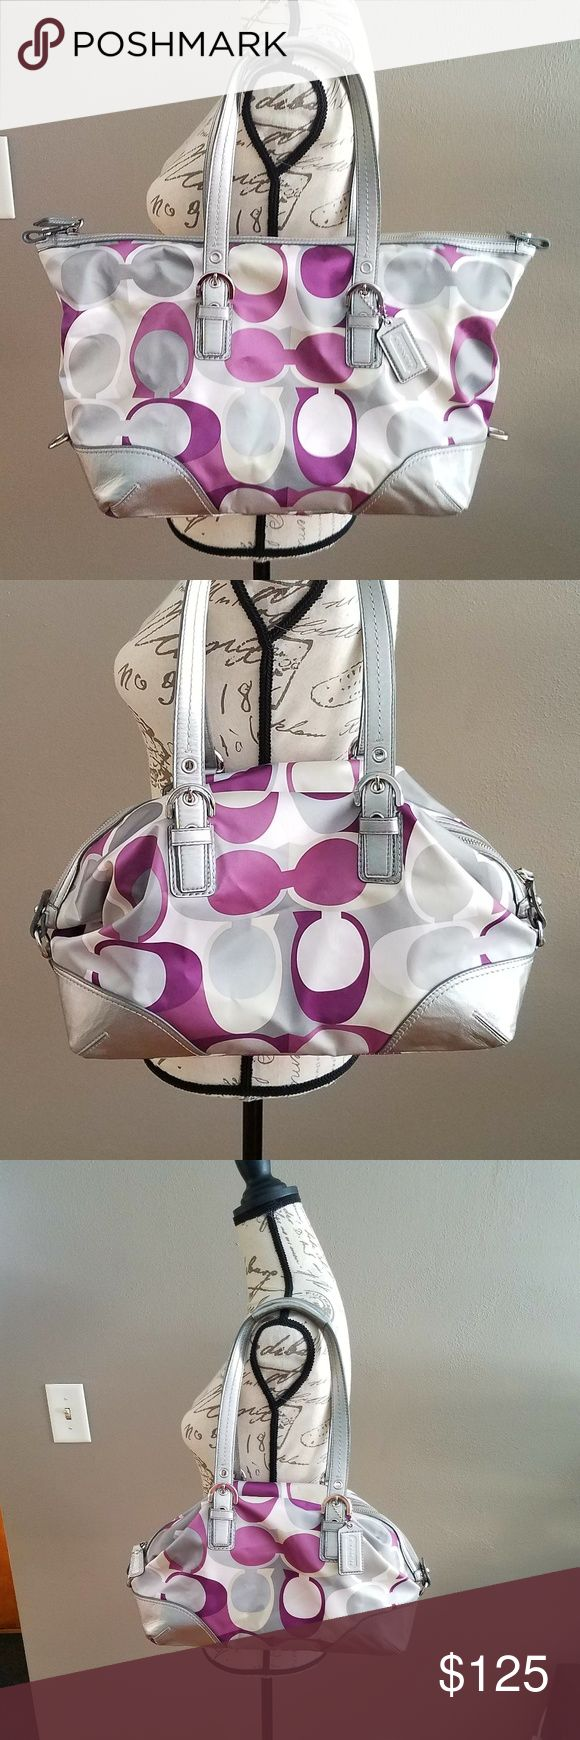 """COACH Purple Tote/Satchel Soho Purse Zip-top closure, water-resistant fabric, polished silver-tone hardware, silver leather trim, silver leather coach hangtag. Interior: 2 slip pockets and 1 large zippered pocket, fully lined w/ lavender sateen fabric. The sides have clips that can convert the satchel into a larger tote. Tote : 18""""(L) x 11""""(H) x 4.5"""" (W) Satchel : 16""""(L) x 9""""(H) x 4.5""""(W) Straps are in great condition. There are a couple small brown spots shown in the pictures...but as you…"""